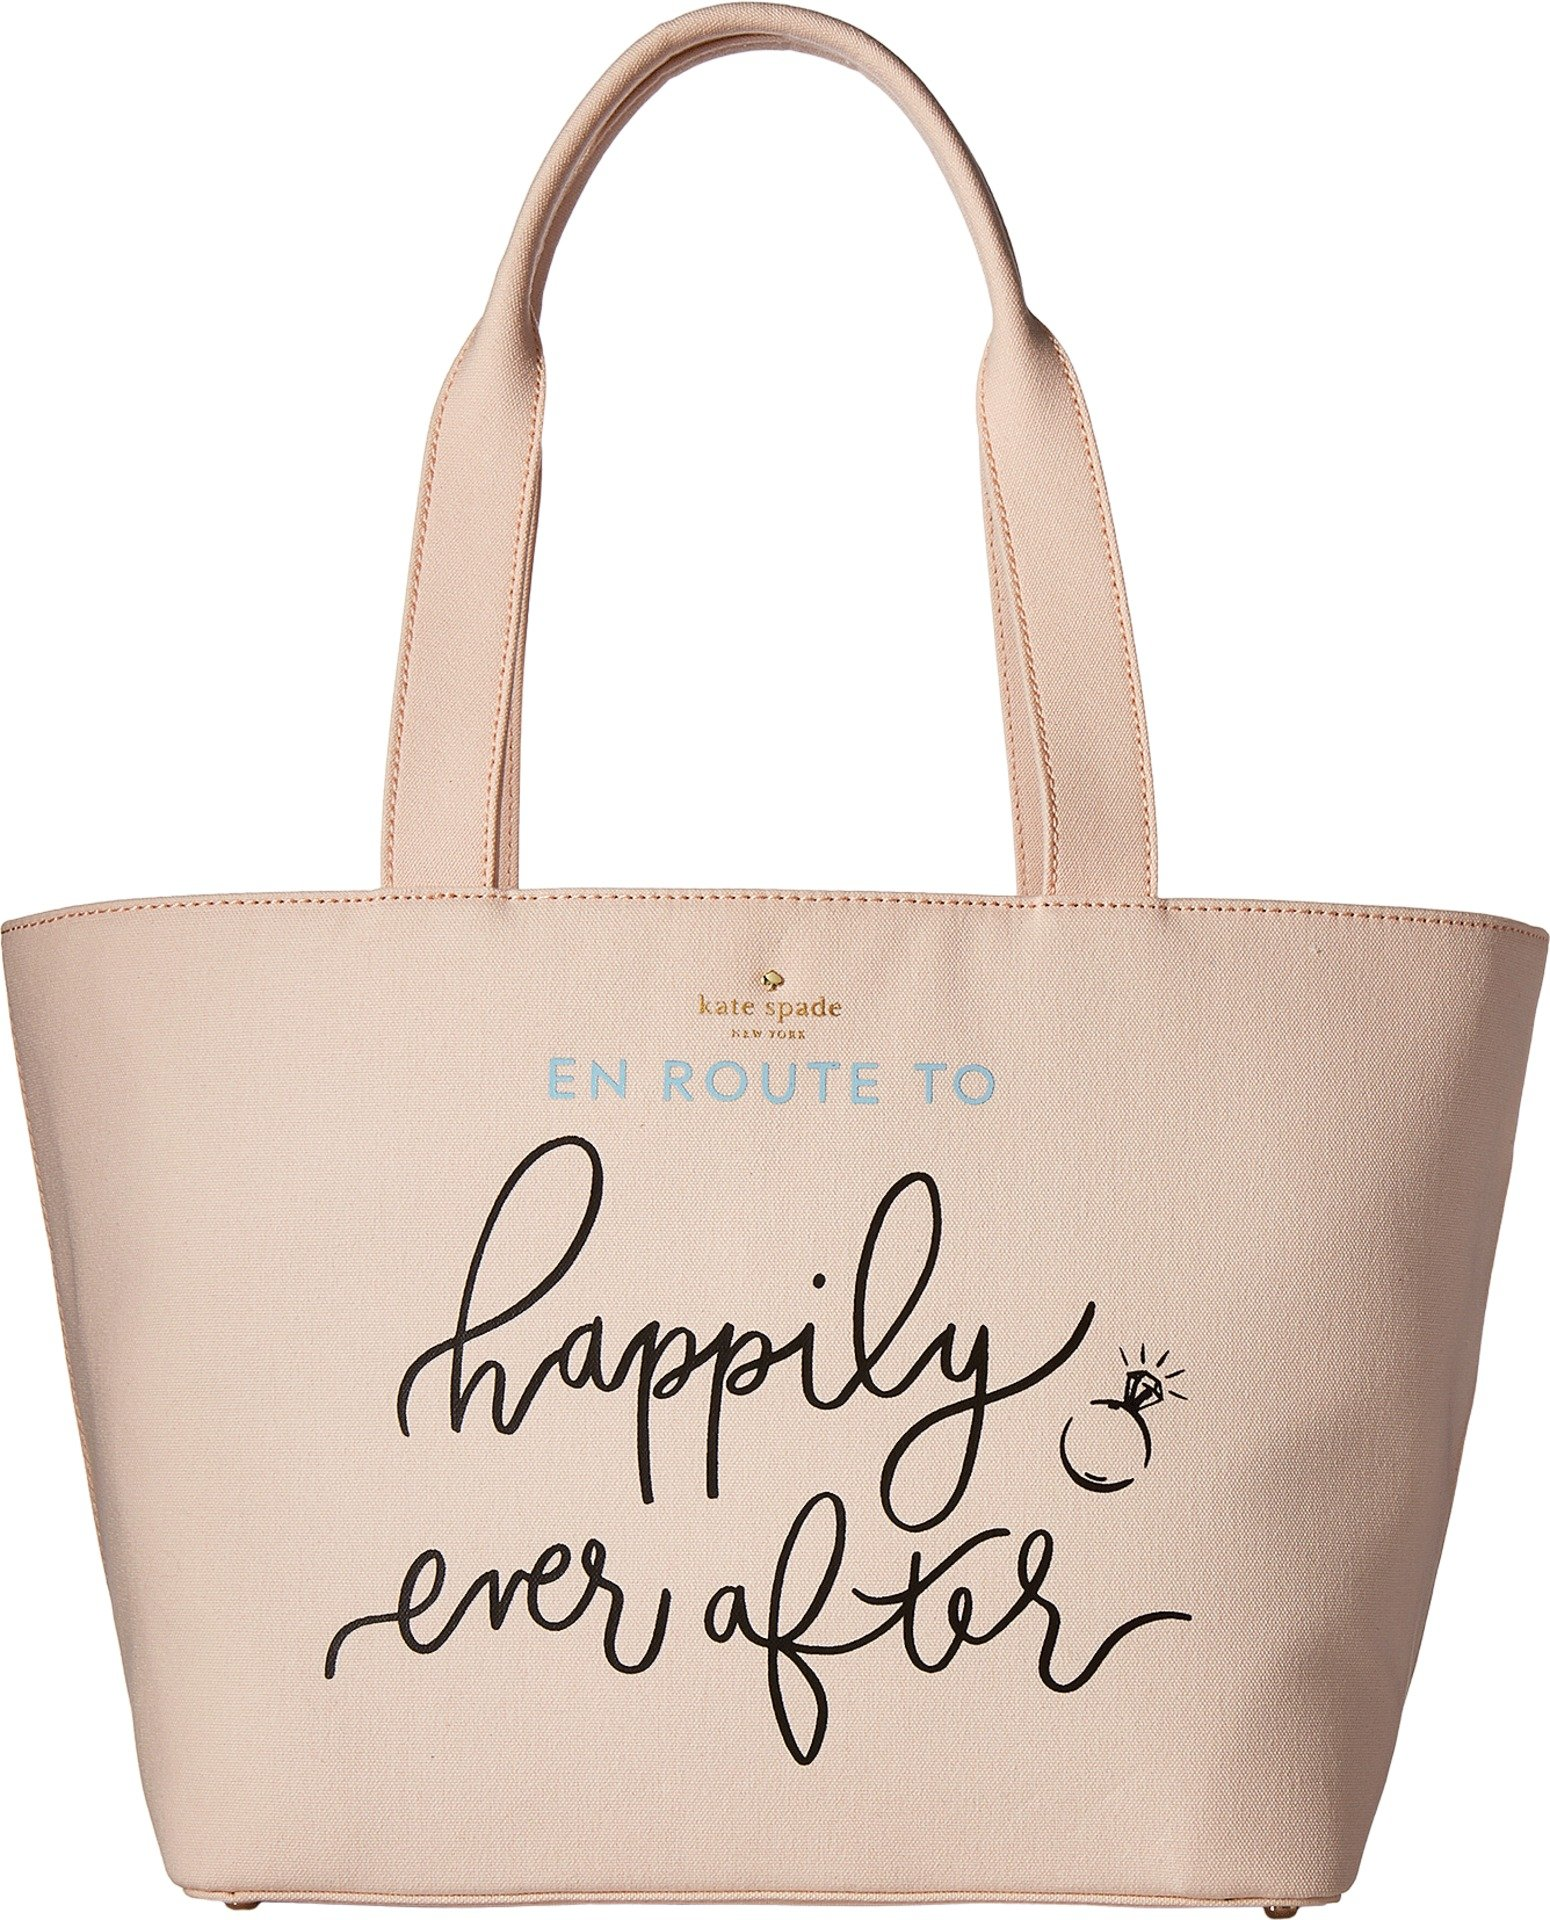 Kate Spade New York Women's Wedding Belles Happily Ever After Multi Handbag